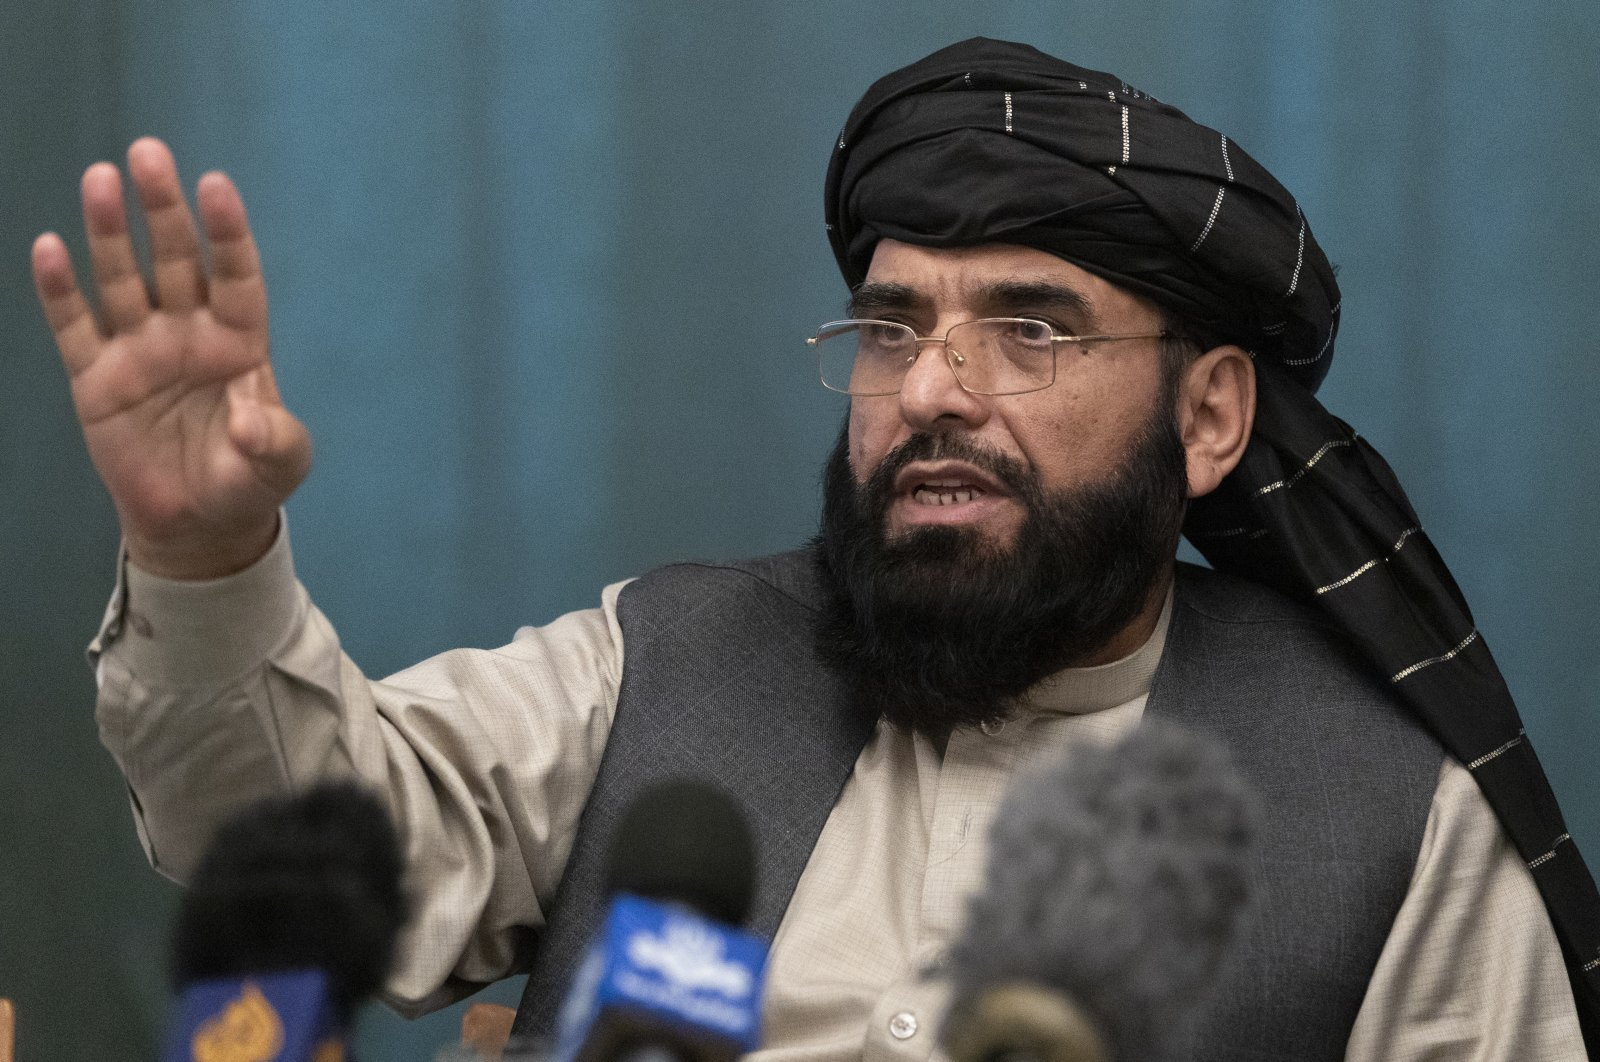 Suhail Shaheen, Afghan Taliban spokesperson and a member of the negotiation team gestures while speaking during a joint news conference in Moscow, Russia, March 19, 2021. (AP Photo)